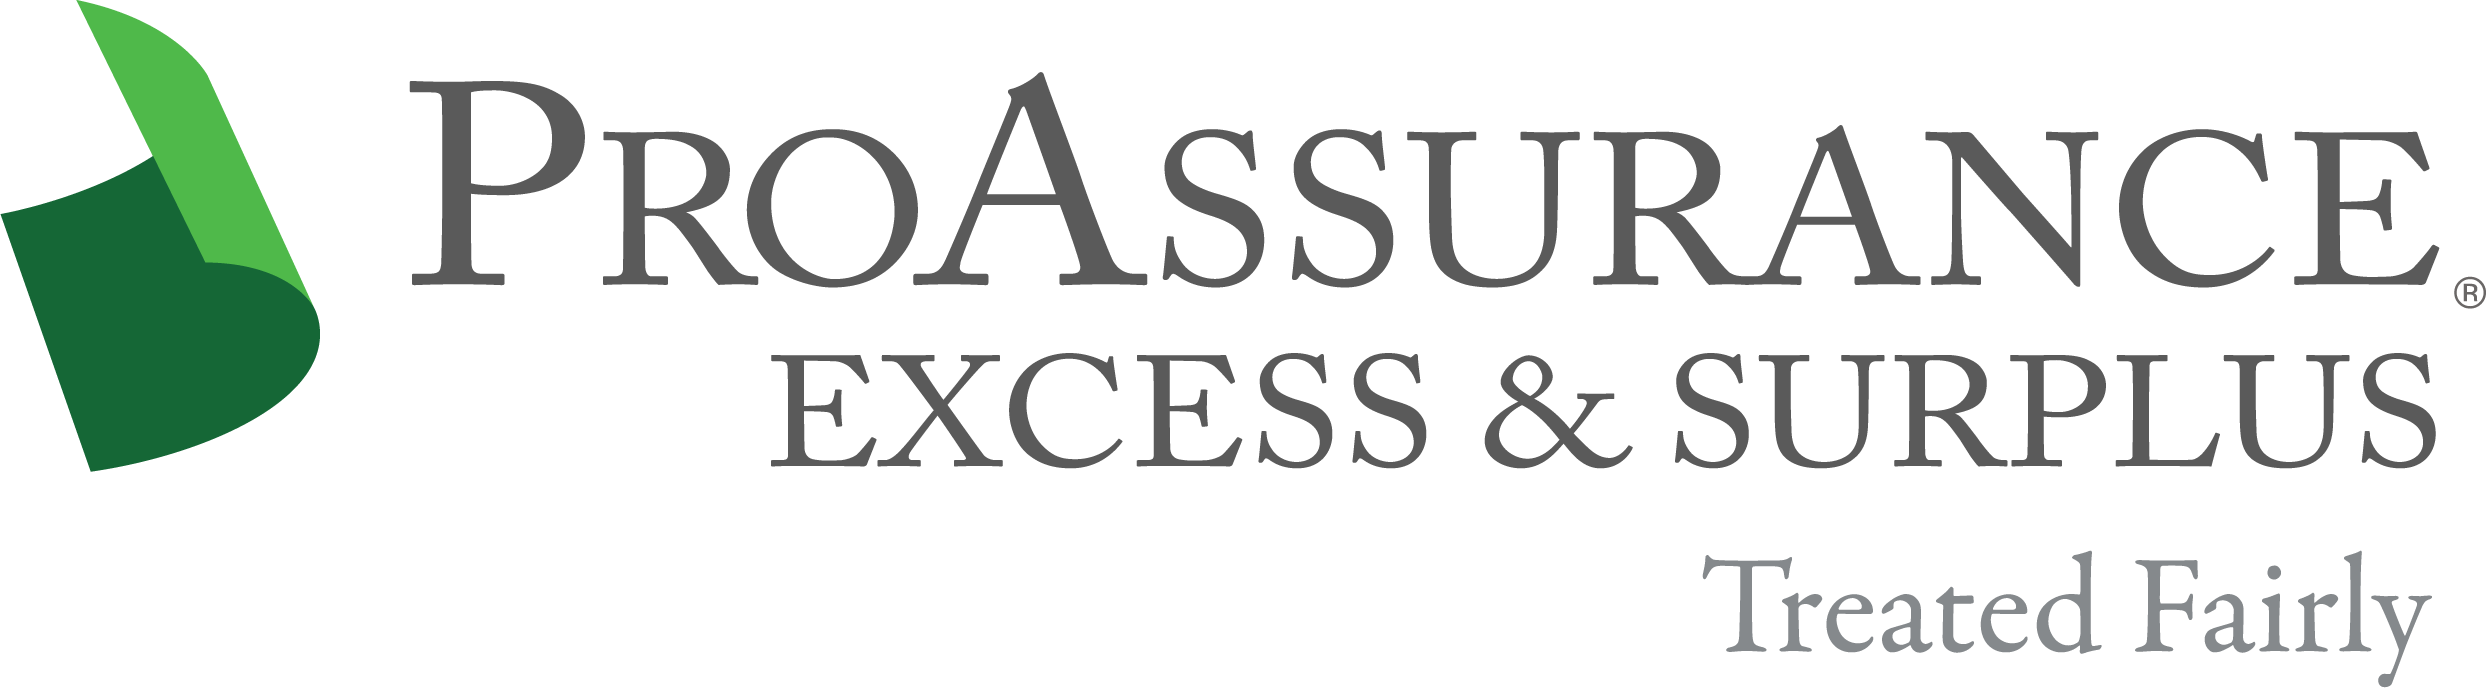 ProAssurance Excess & Surplus logo